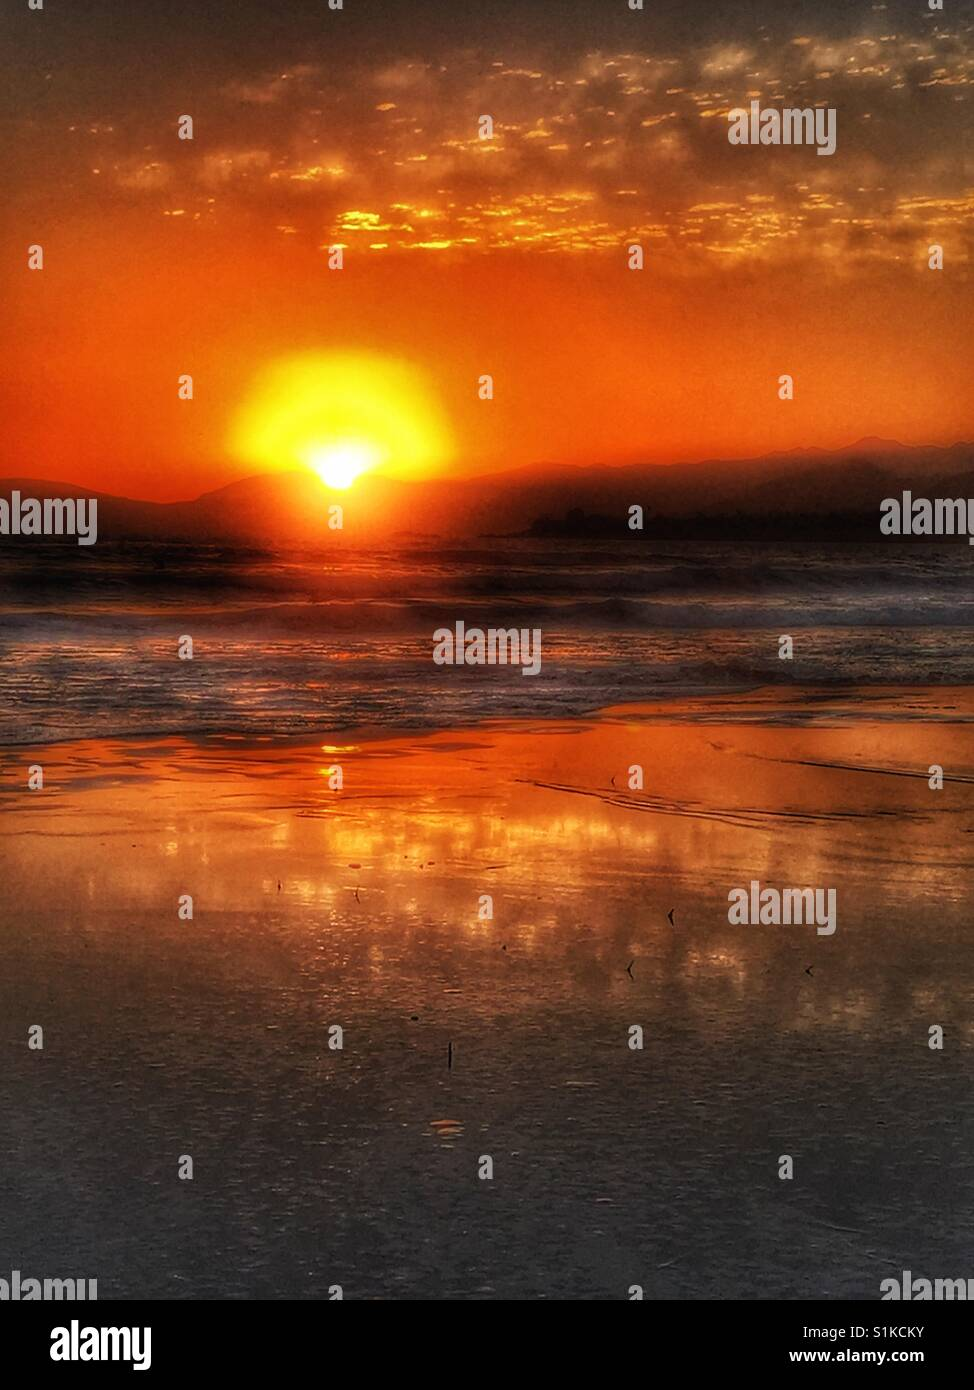 Sunset seascape at Pismo beach, California. View from beach across ocean as sunset behind headland. Golden colours - Stock Image